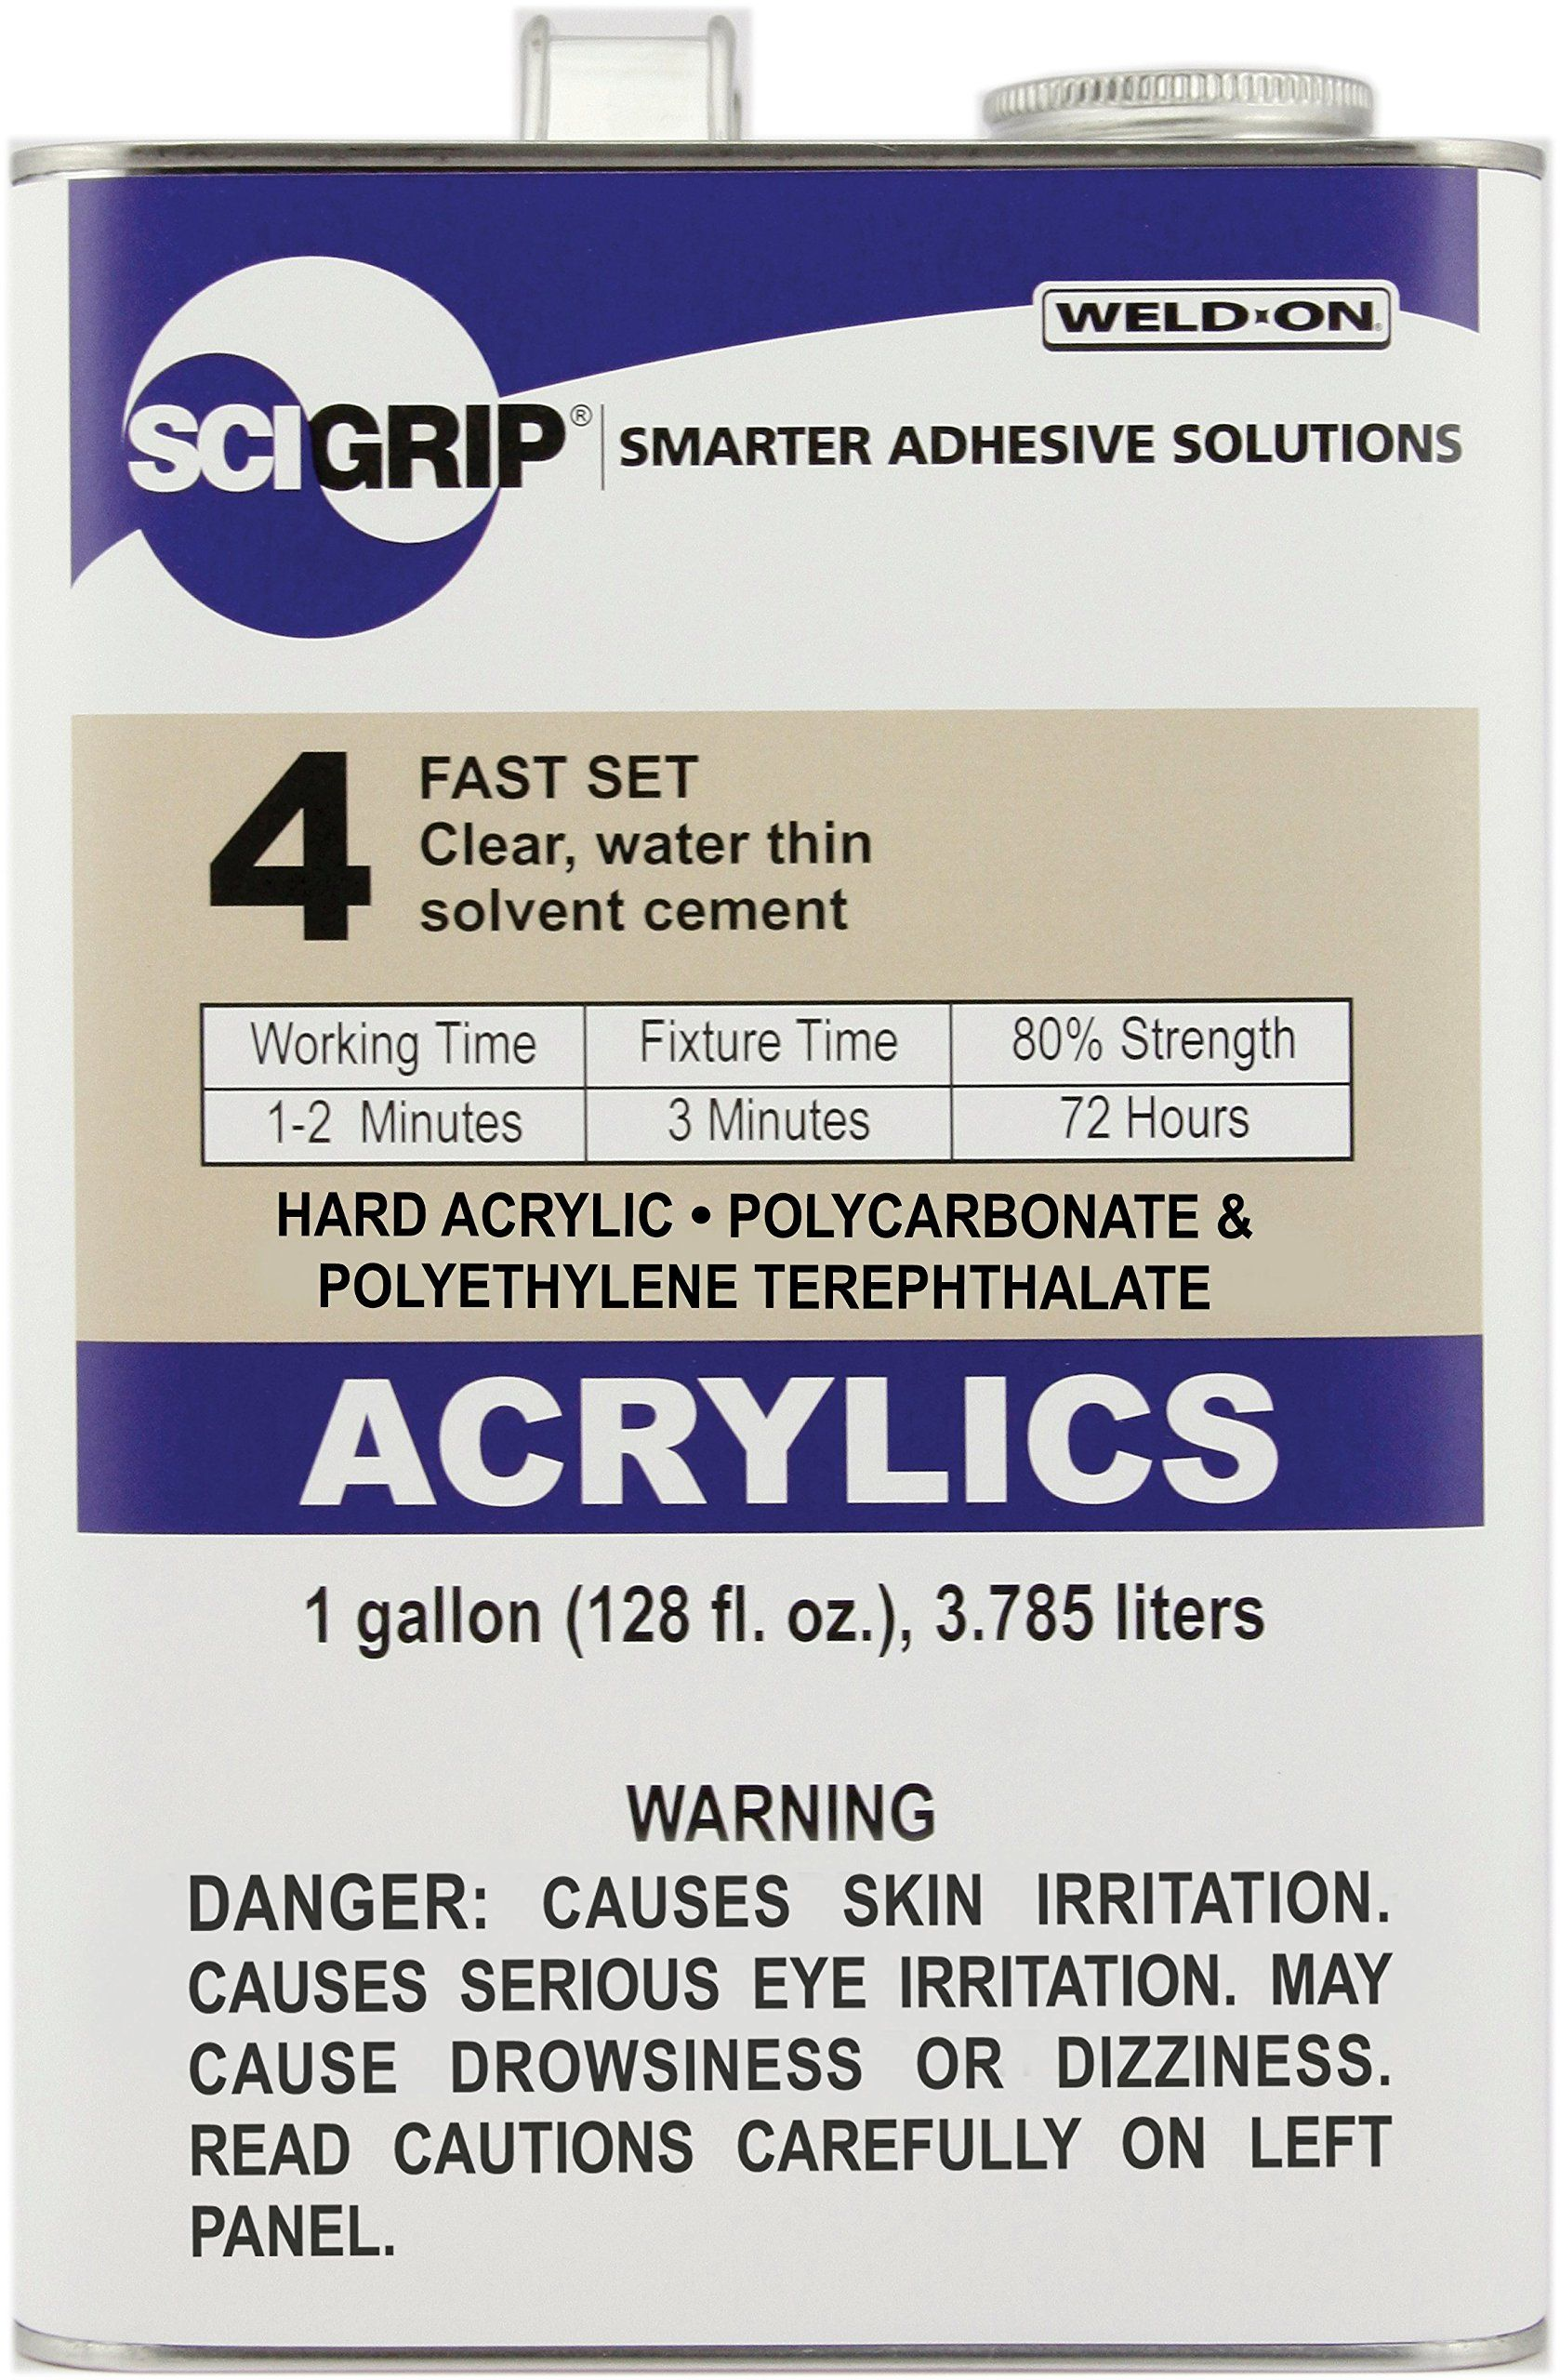 Scigrip Weldon 4 Adhesive Gallon And Weldon Applicator Bottle With Needle You Can Find More Details By Visiting The I Adhesive Irritated Skin Craft Projects